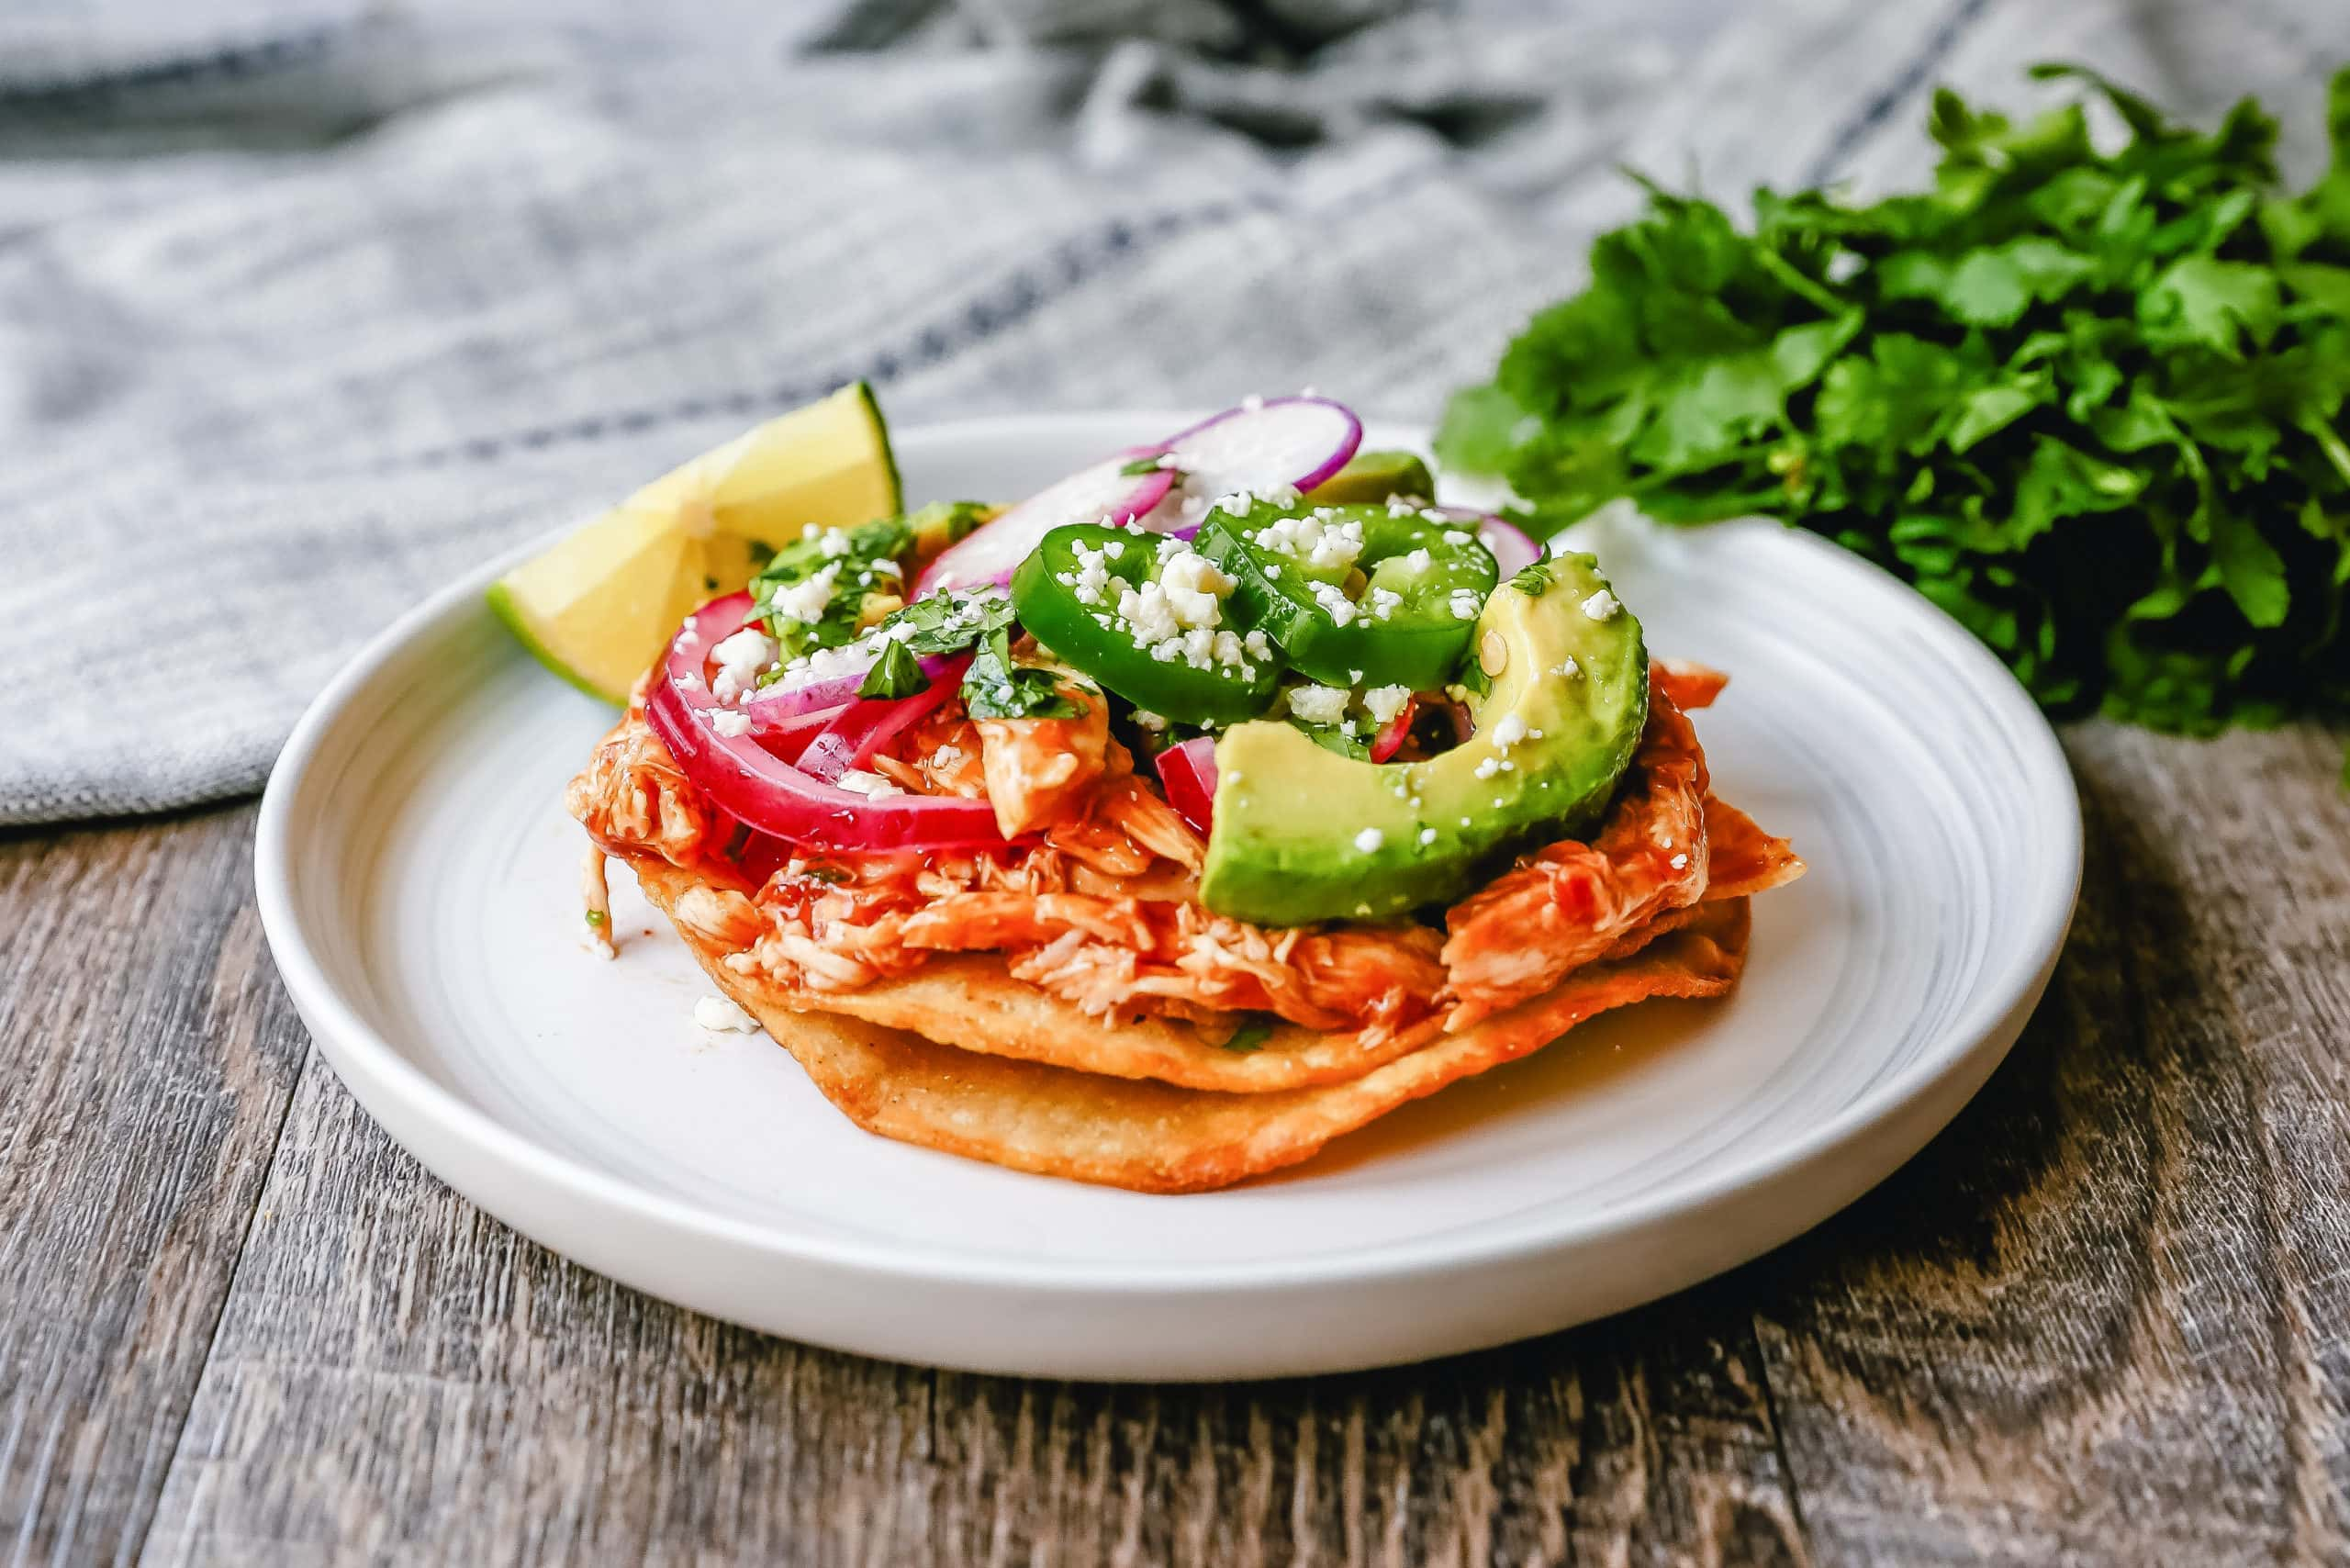 Chicken Tostadas Chile Chicken Tostadas made with homemade tostada shells topped with chile spiced chicken topped with cotija cheese, cilantro, pickled red onion, fresh avocado, and jalapeños.